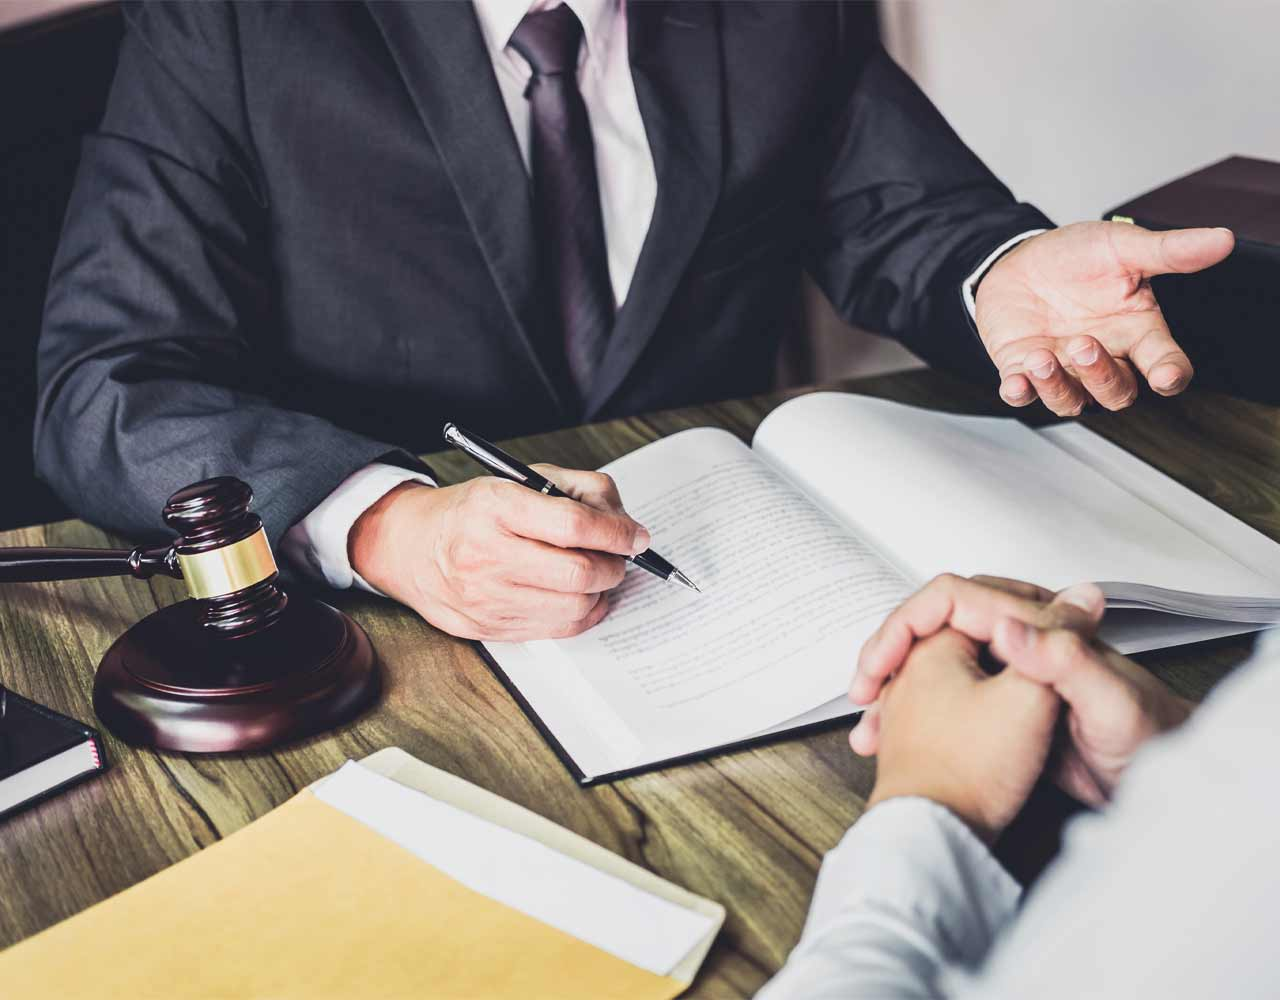 How to Get More Clients for Your Law Firm?